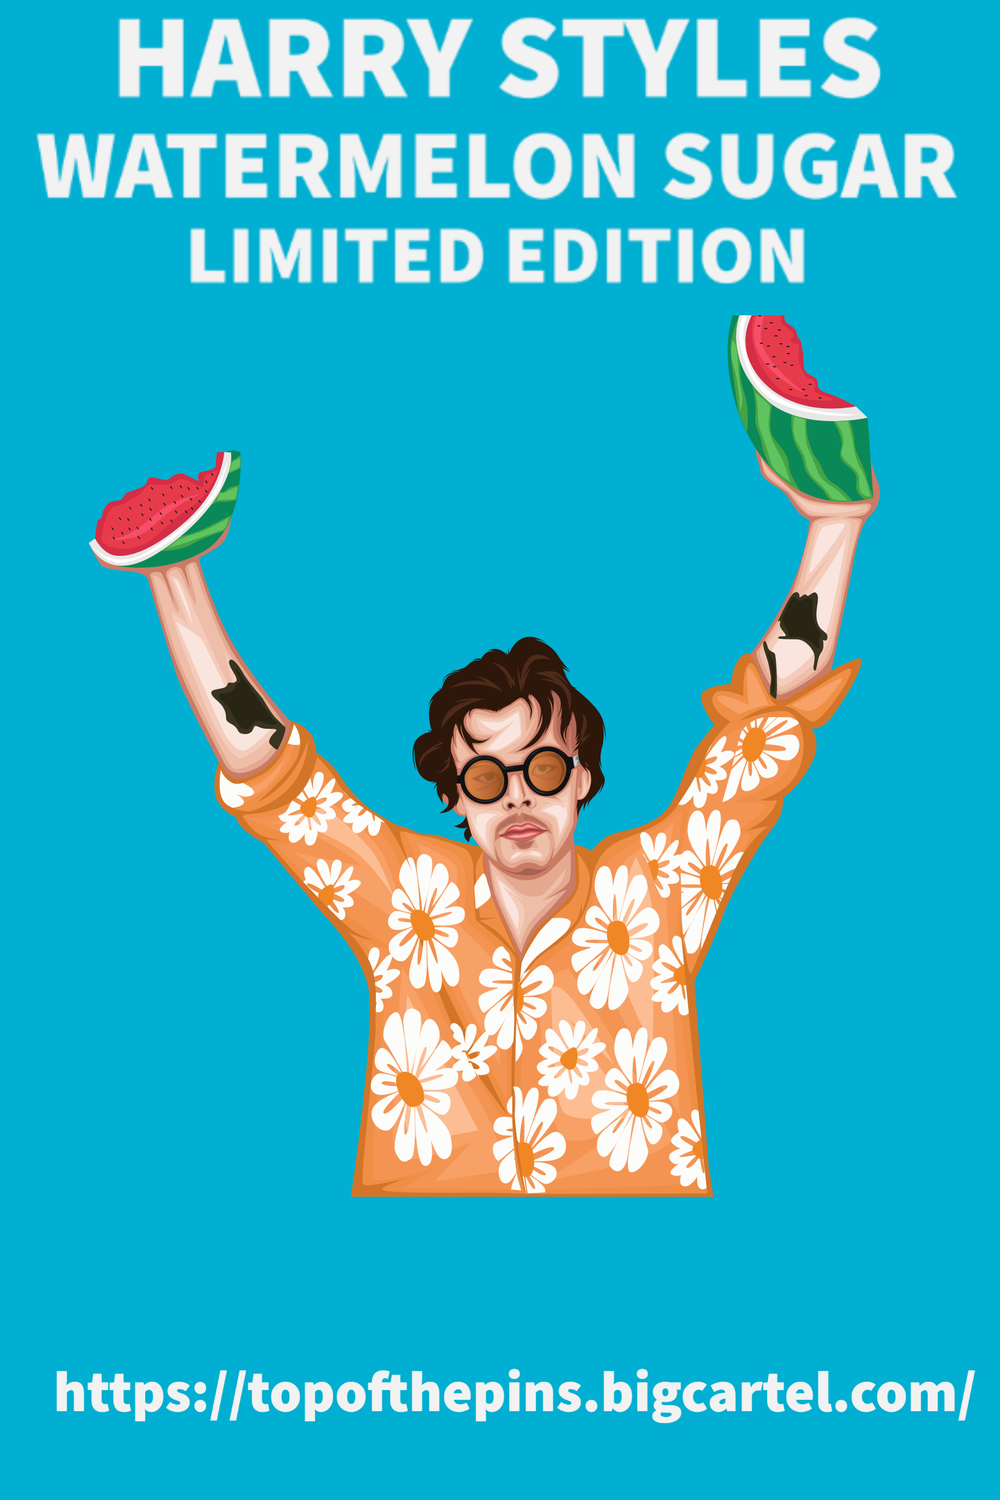 Harry Styles - Watermelon Sugar Limited Edition Pin Badge